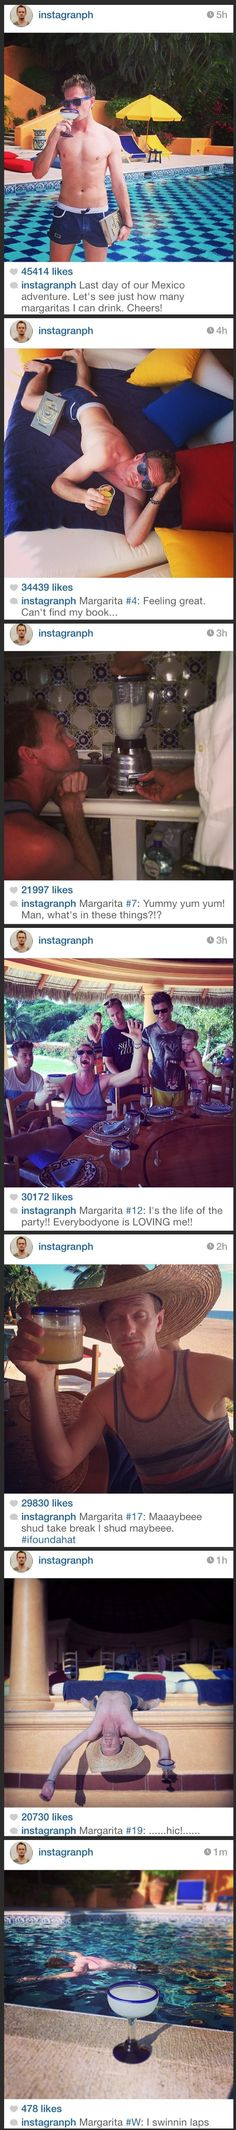 NPH documents his last day of vacation in Mexico....reminds me of my trip to Puerto Rico w Lydia and Russ :)